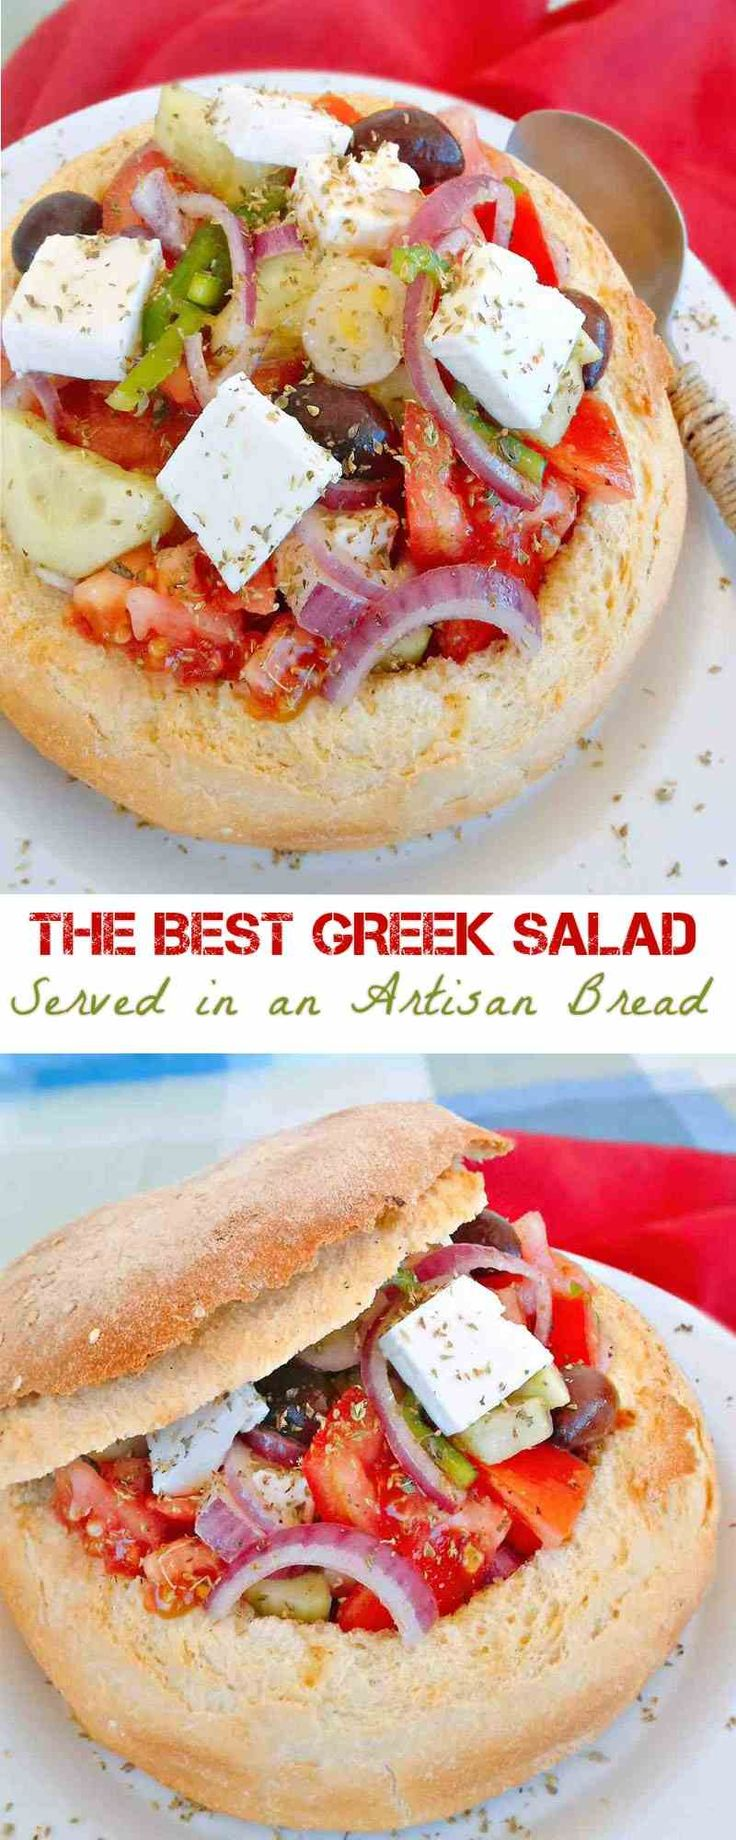 This Greek Salad is absolutely amazing. Being stuffed in an Artisan Bread, that soaks all the flavors from the delicious dressing. Serve it on your next BBQ and wow your friends. Cut a piece of it like a cake and serve.  #Greeksalad #salad #vegetarian #apetizer #easyrecipe #Greekfood